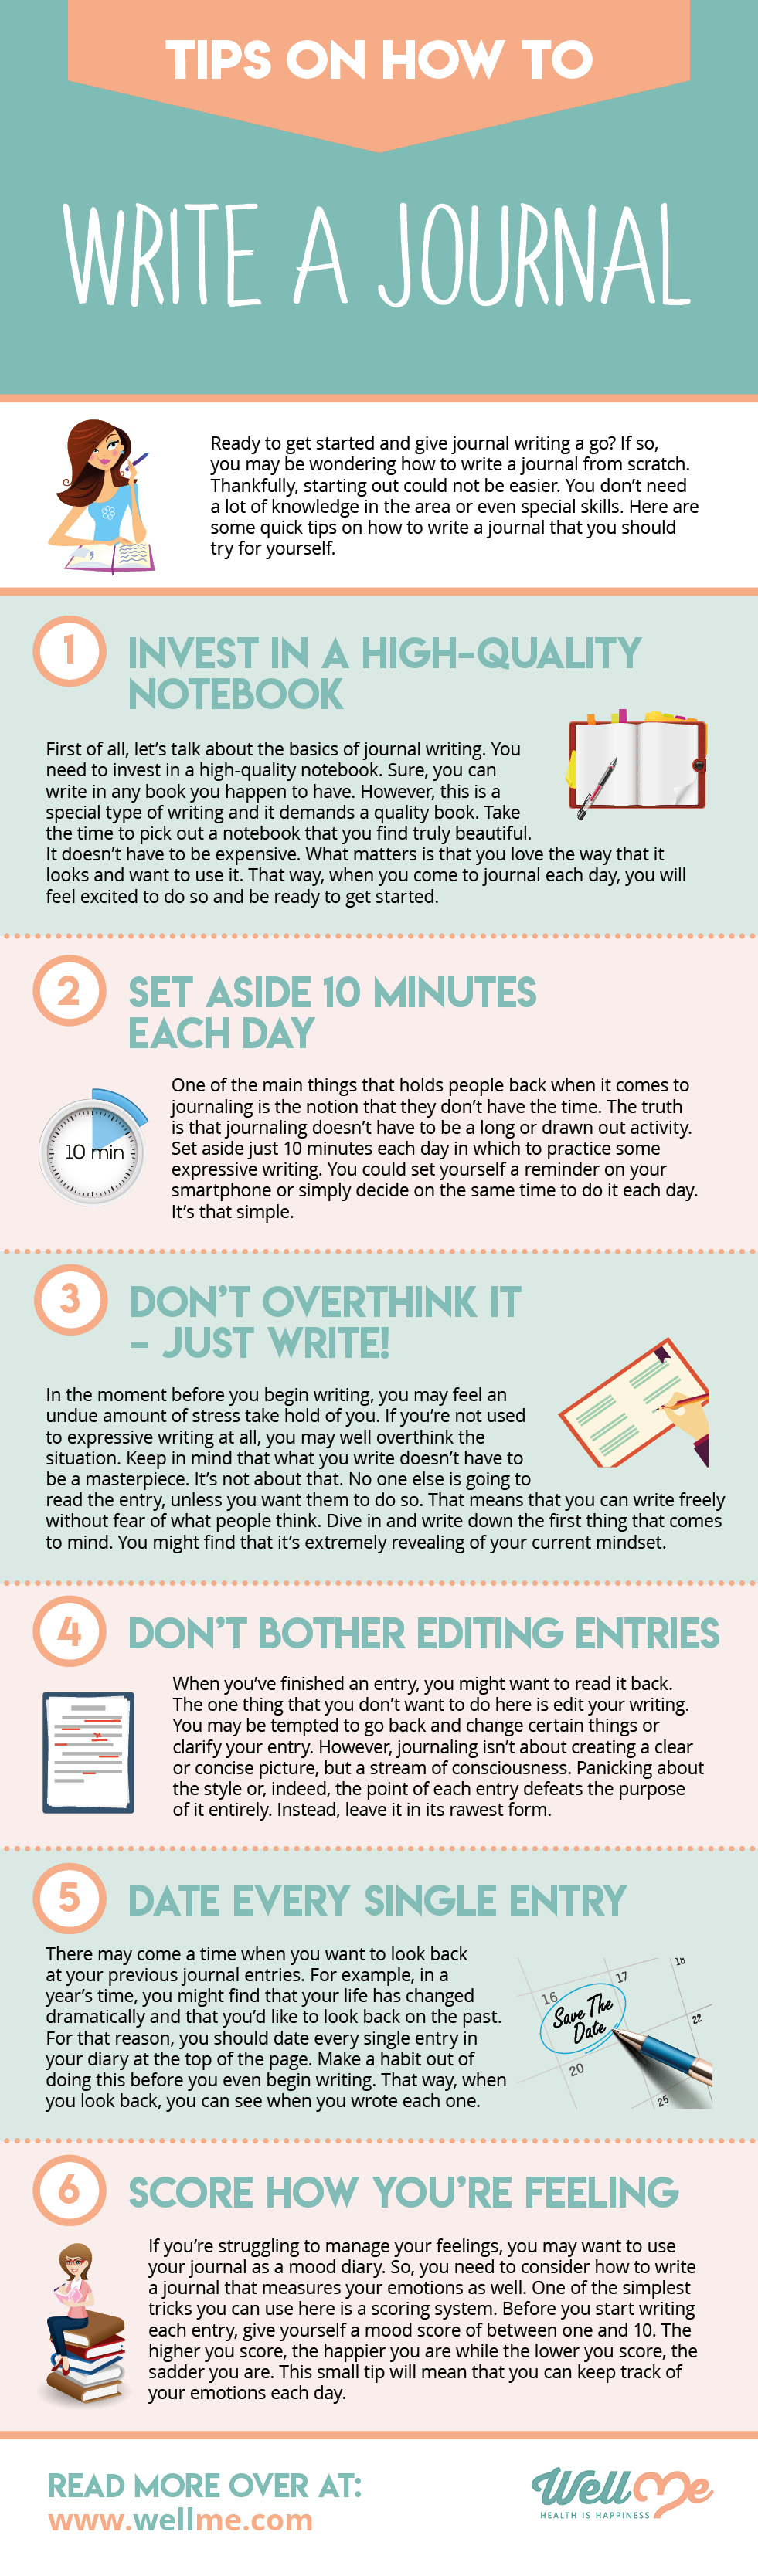 If you're ready to start a journal, here's an infographic with the steps to take first: #journal #journaling #howtowriteajournal #writingtips #benefitsofjournaling #morningpages